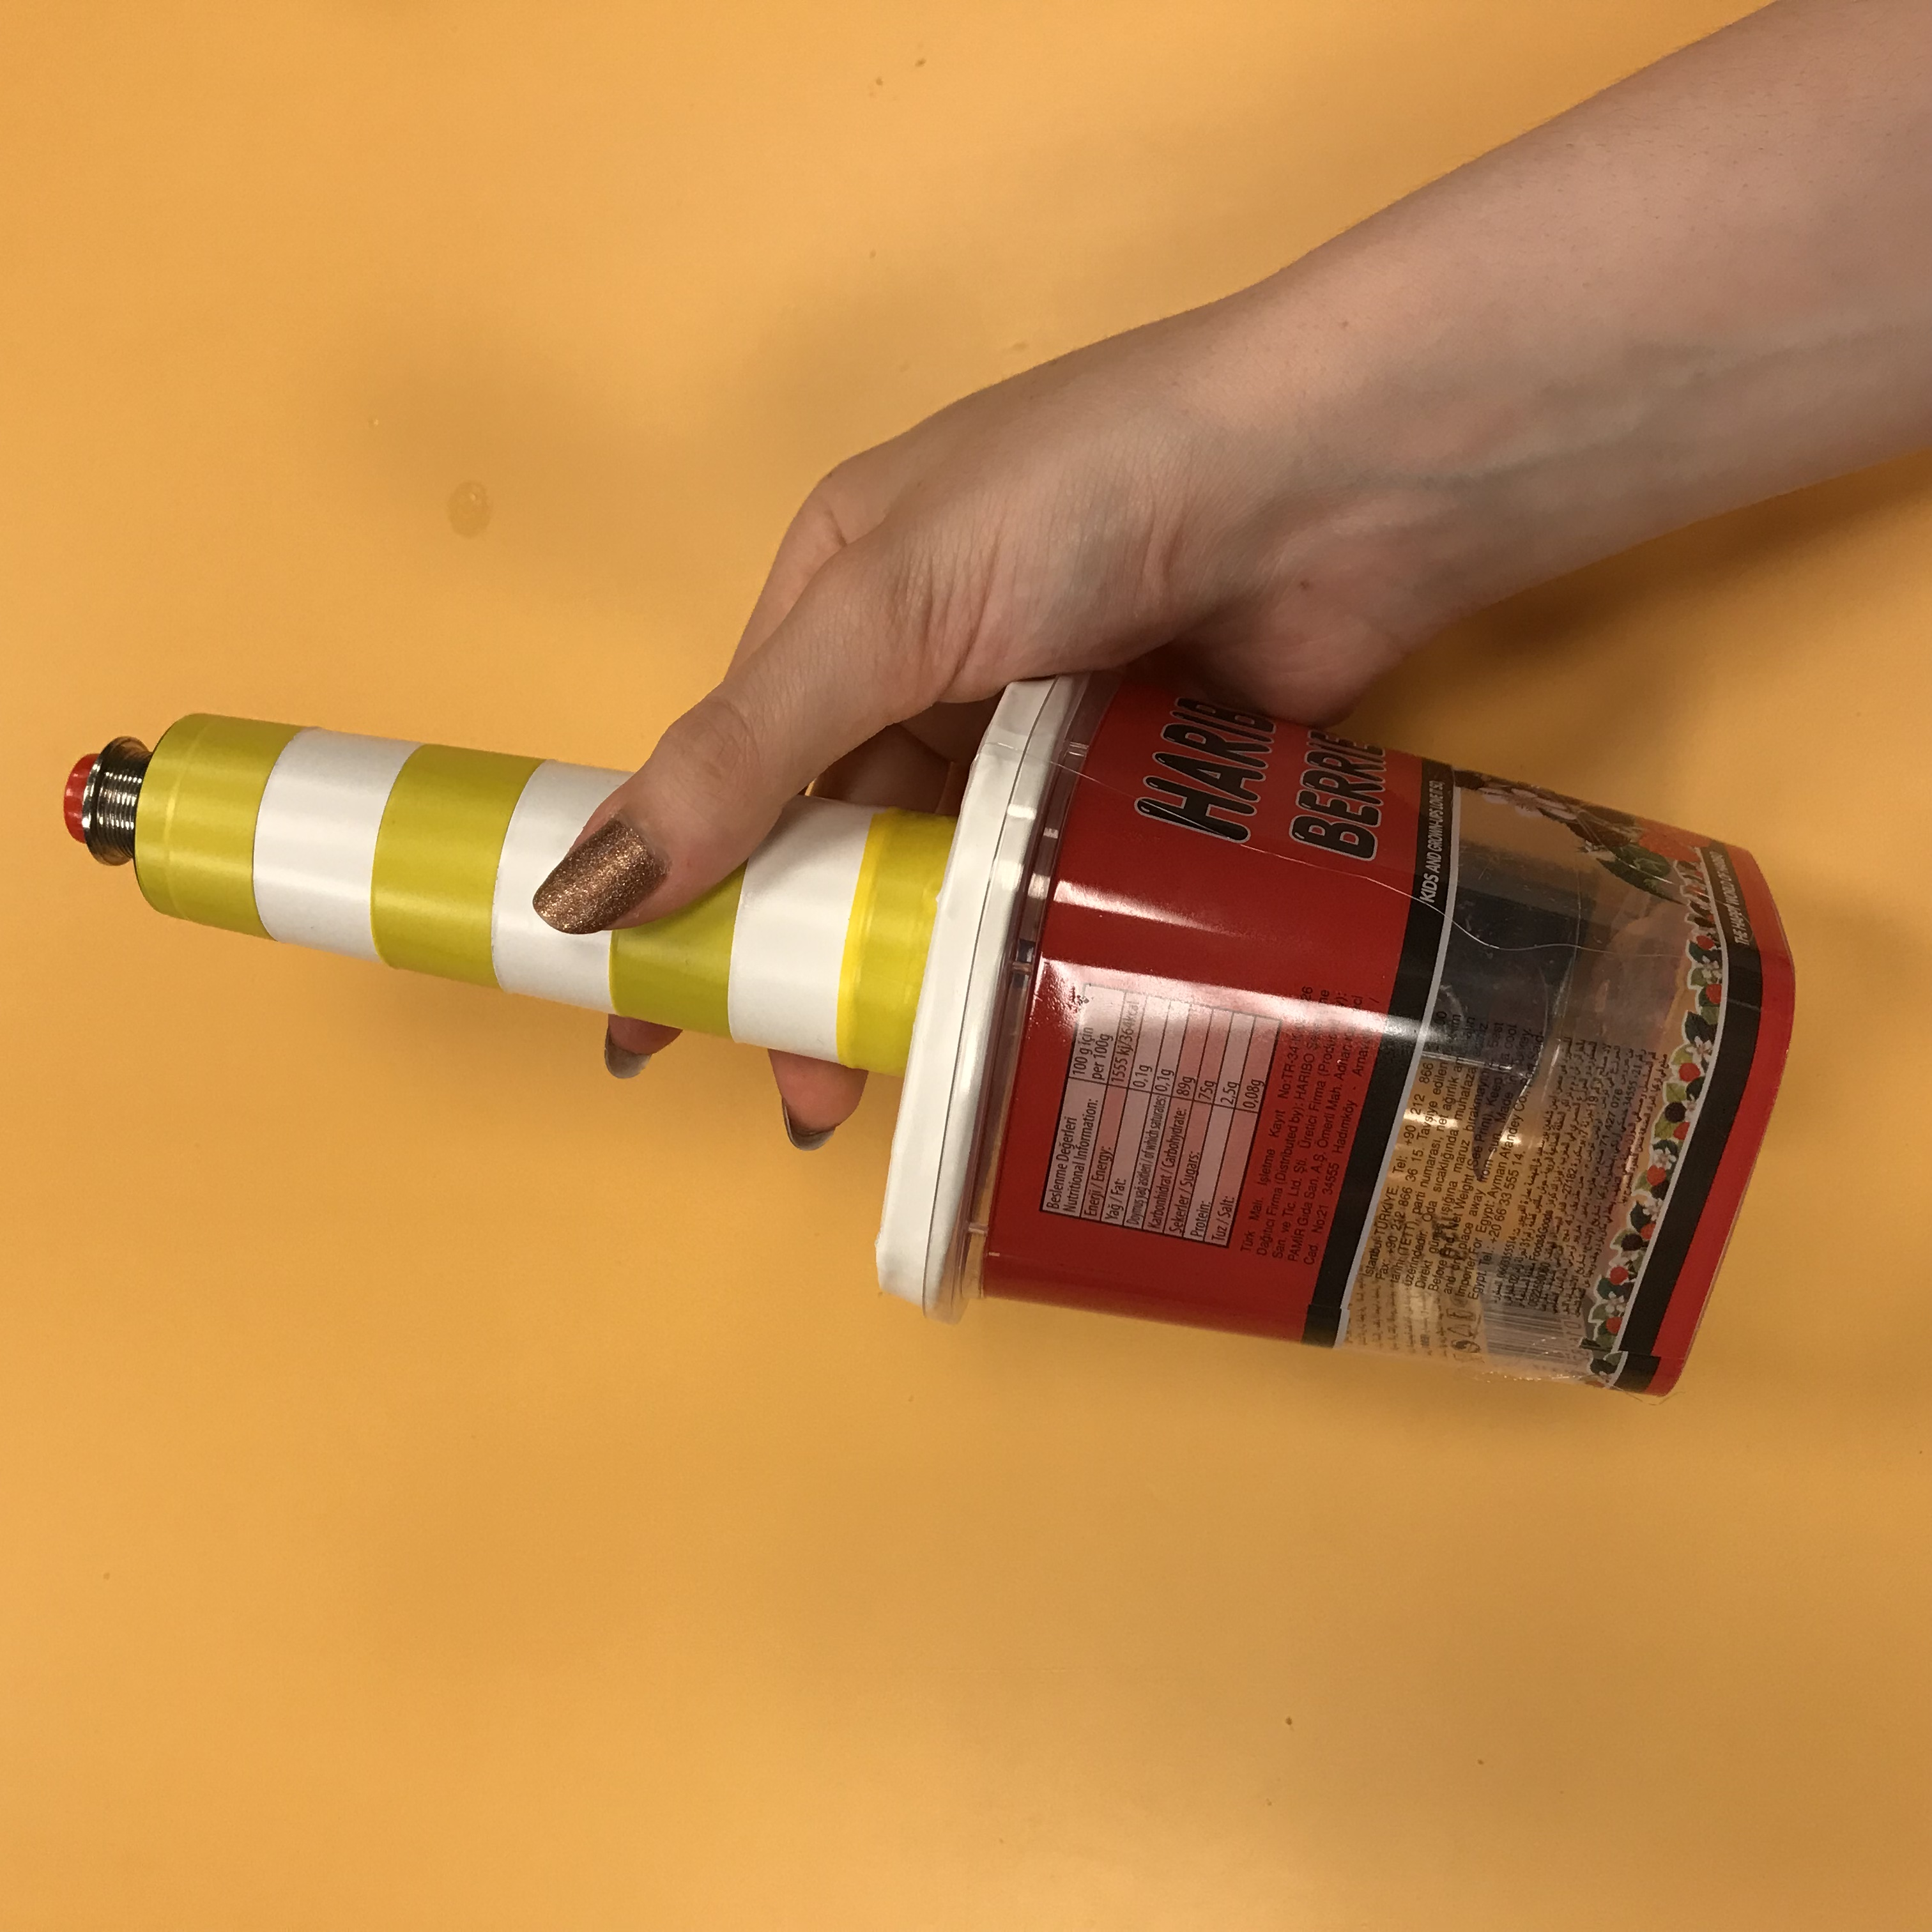 Picture of Let's Make a Mini Mixer With Recyclable Materials